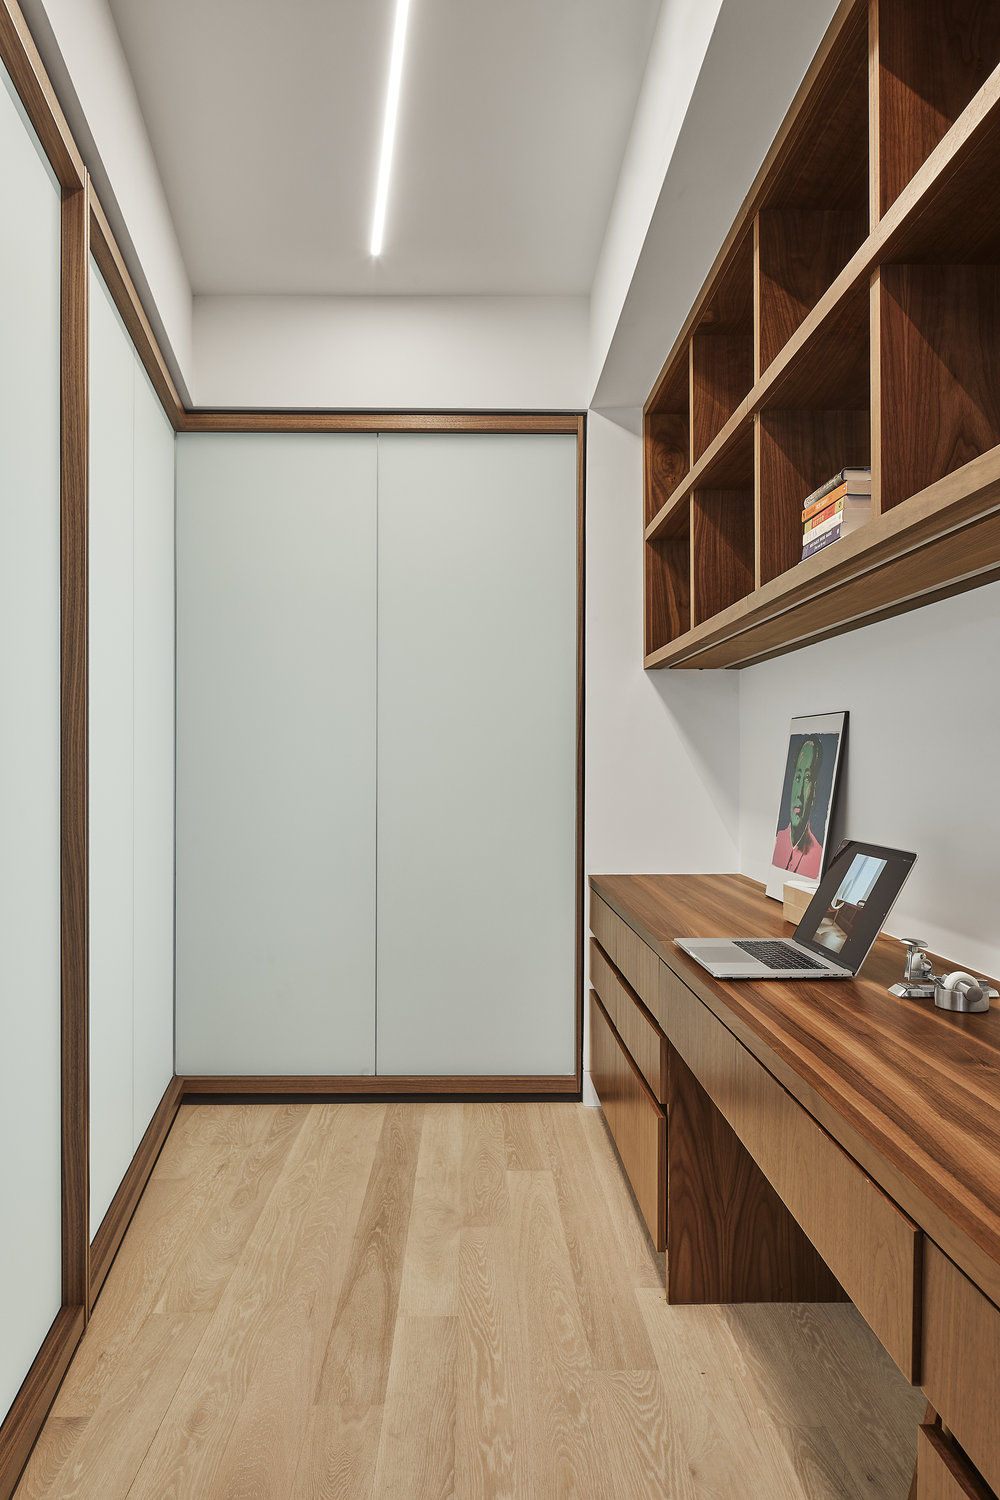 turkel_design_modern_prefab_home_soho_loft_office_cabinetry_storage.jpg